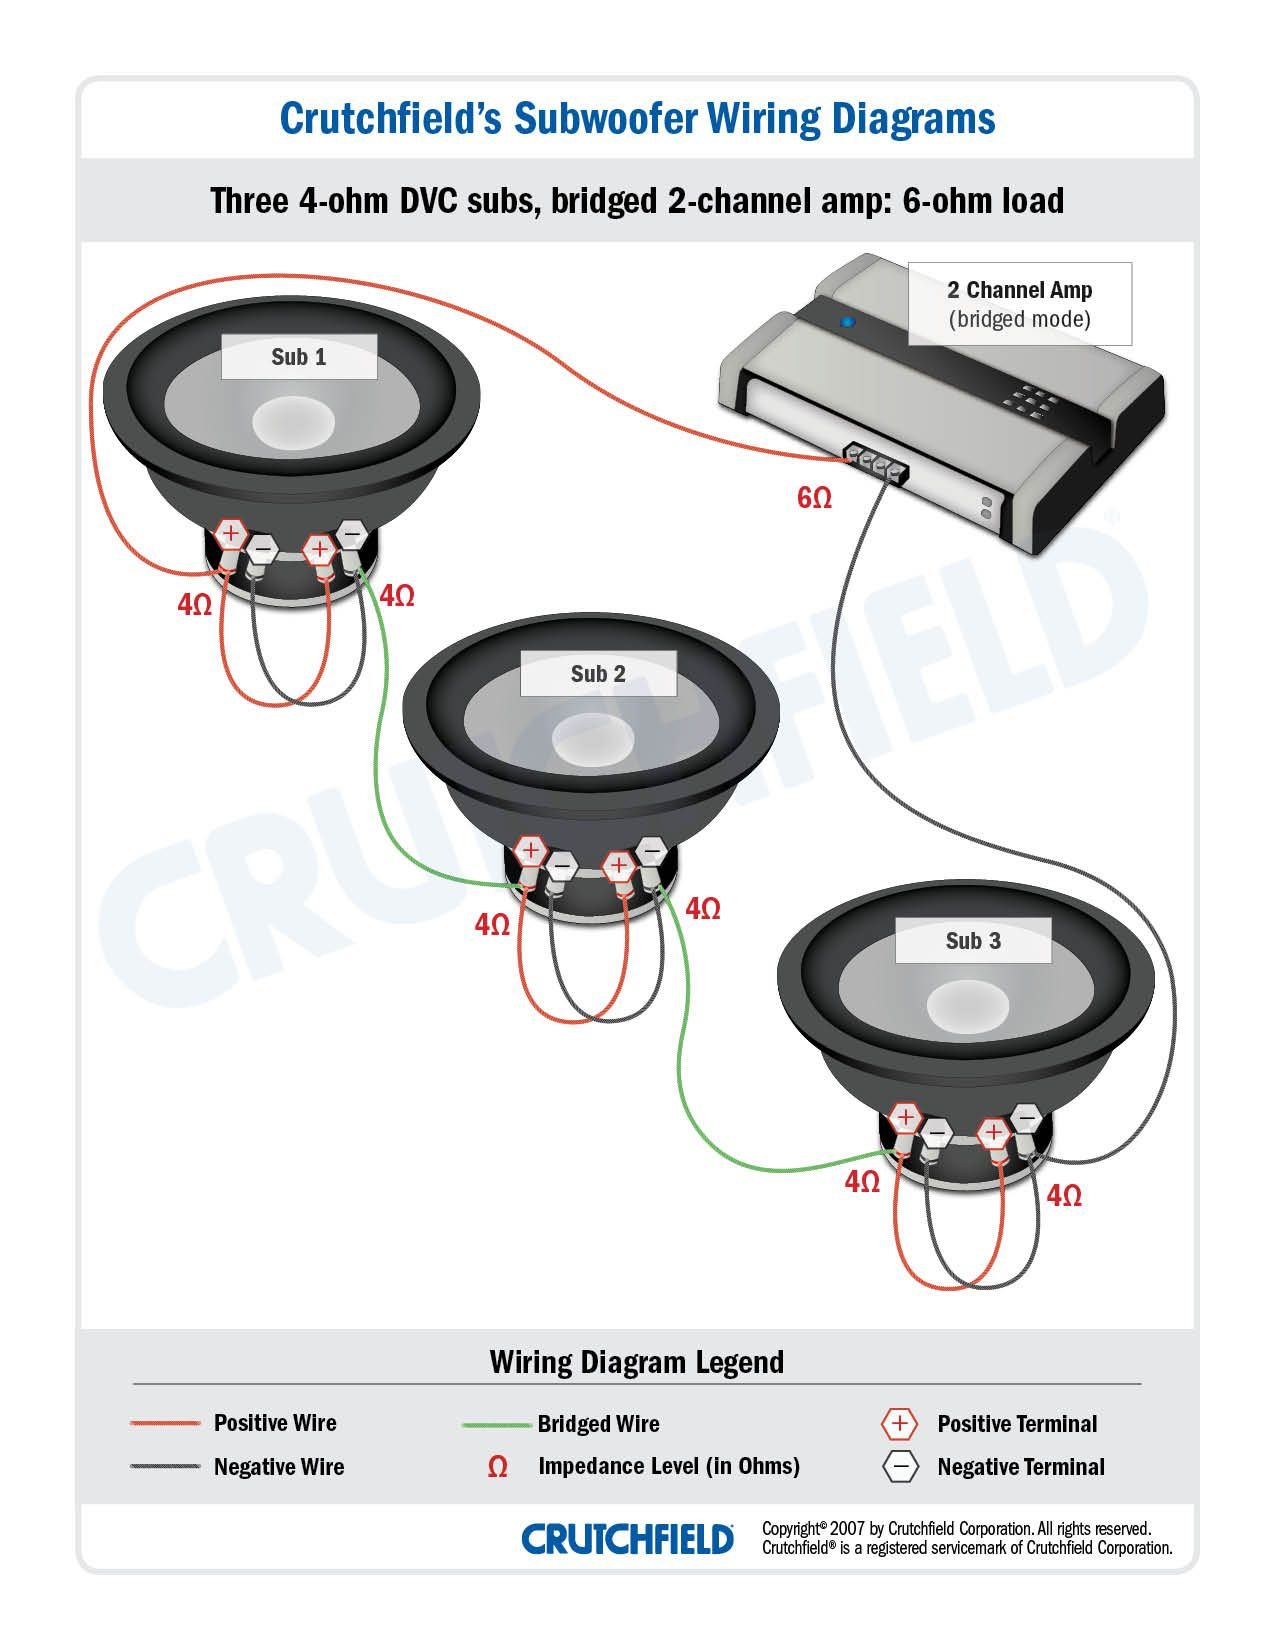 top 10 subwoofer wiring diagram free download 3 dvc 4 ohm 2 ch and rh pinterest com dual 4 ohm subwoofer wiring diagram dual 4 ohm subwoofer wiring diagram